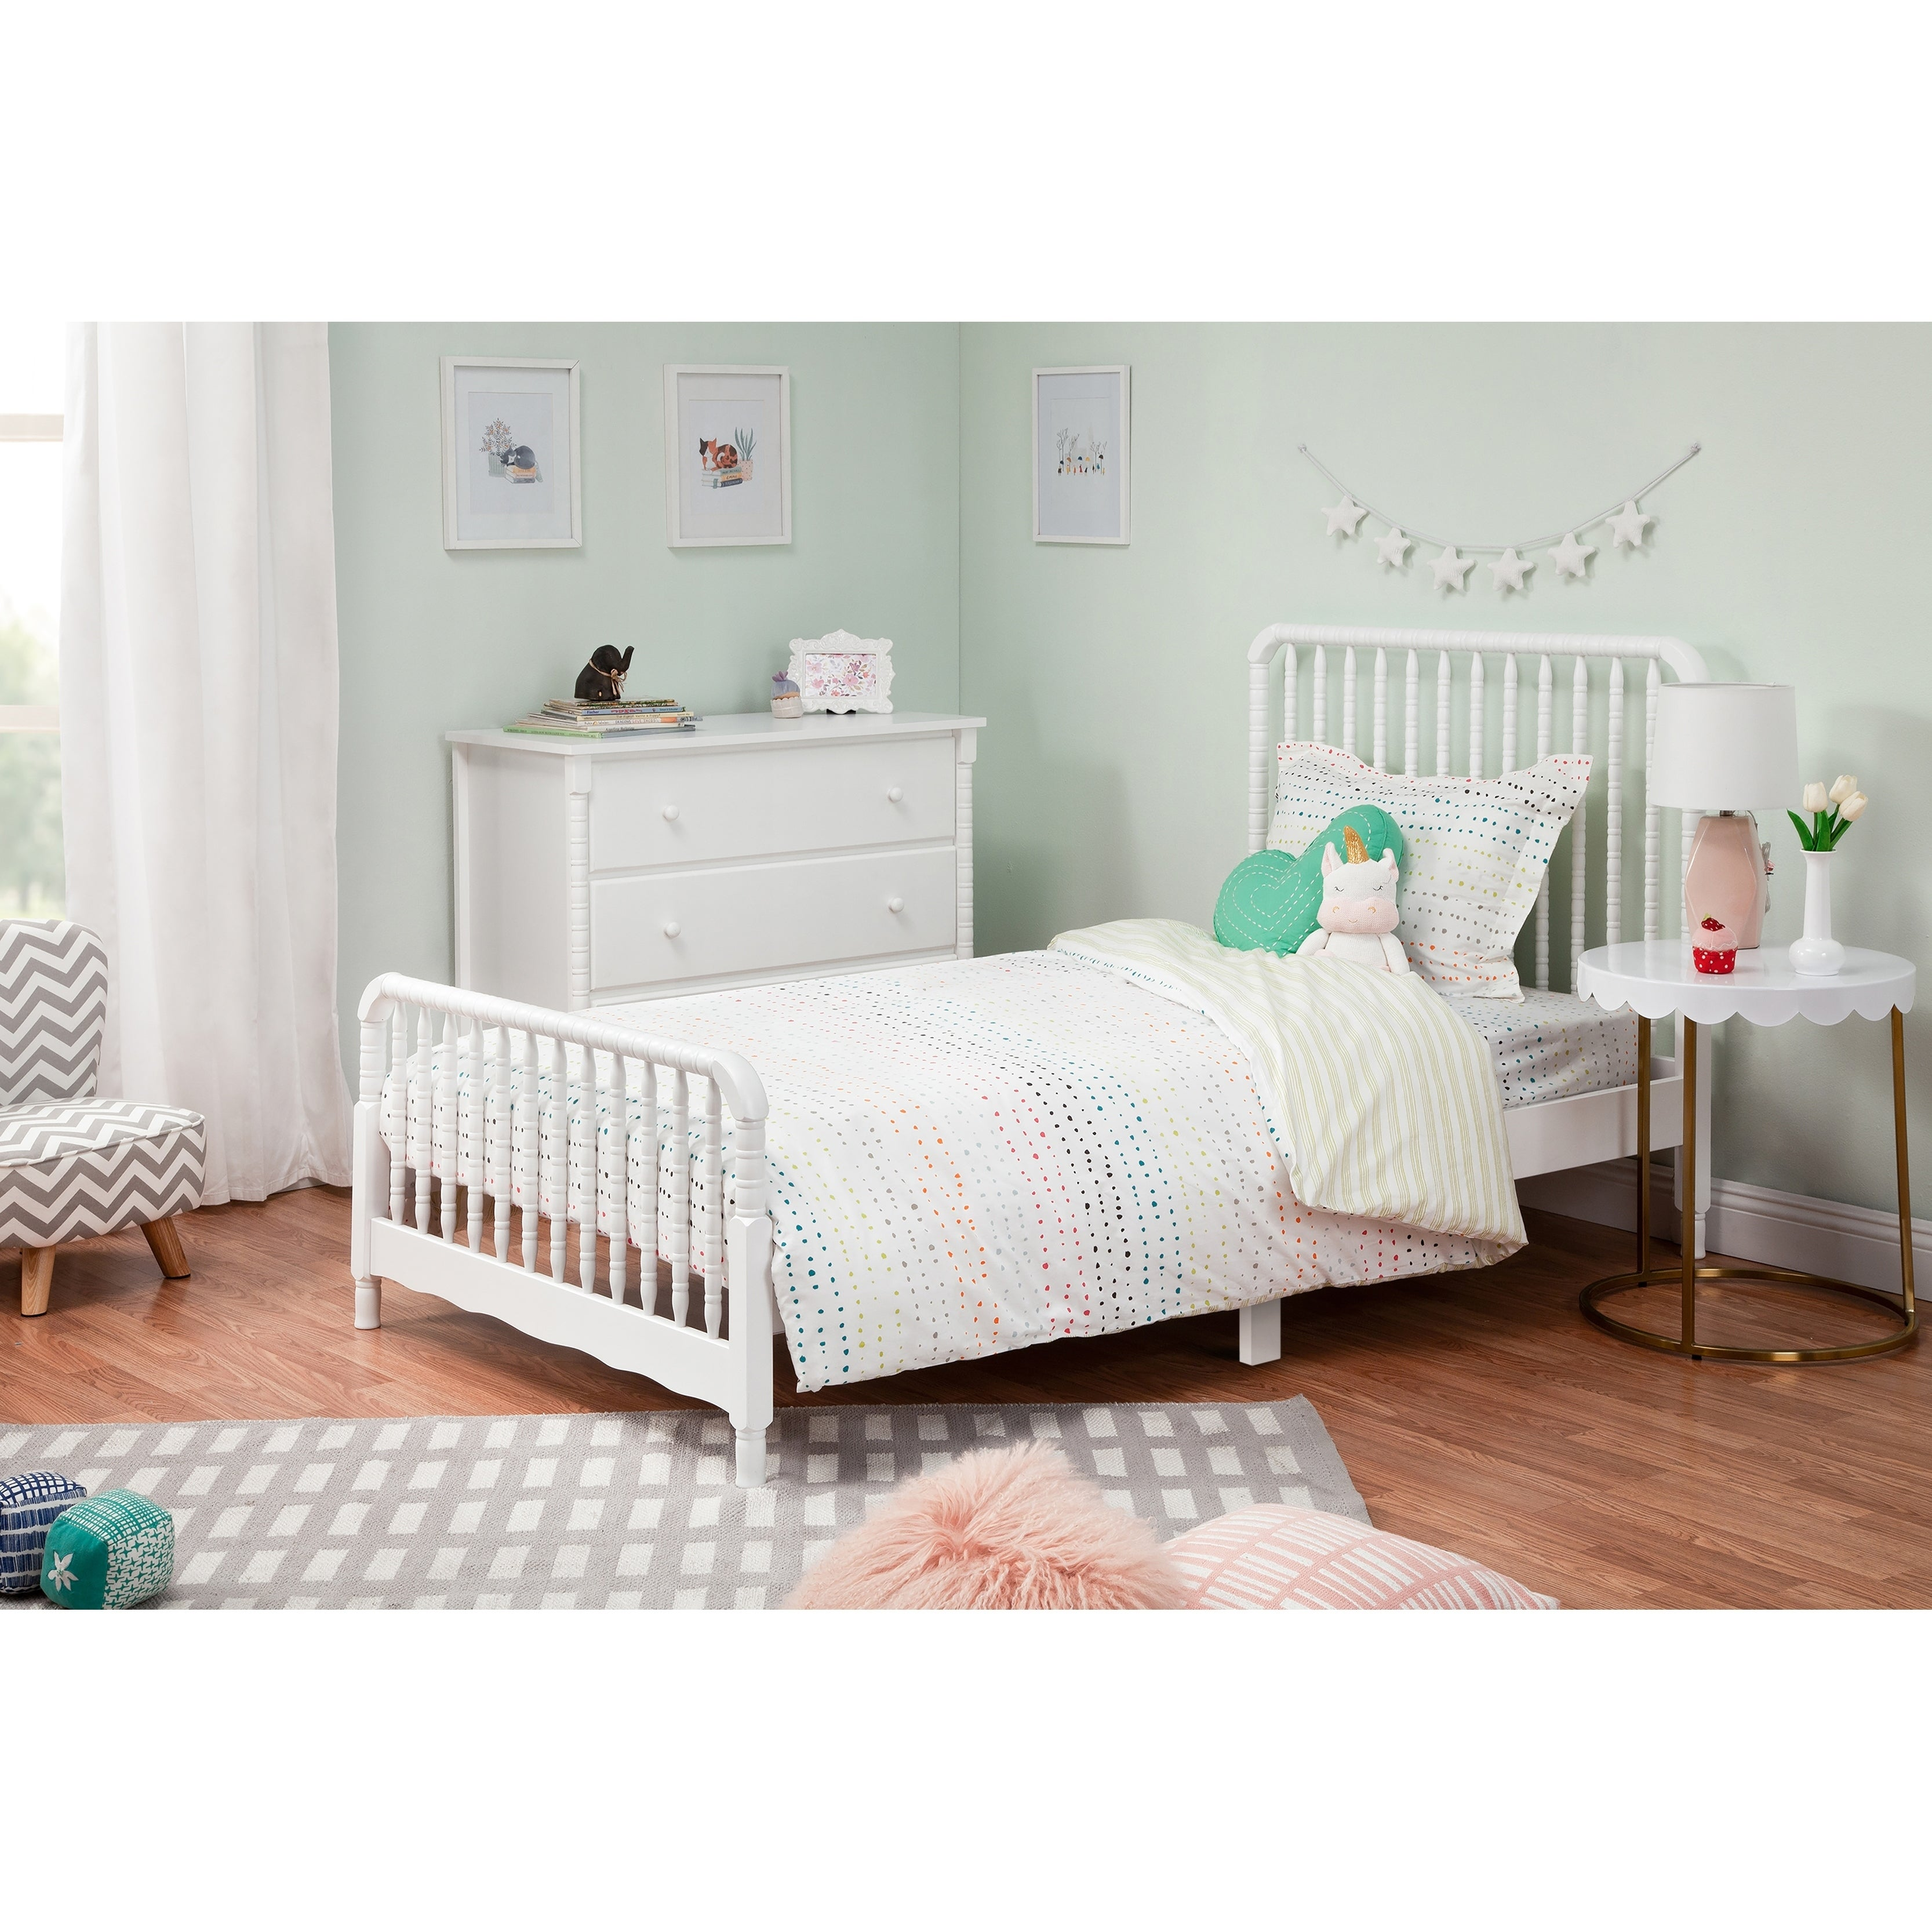 Davinci Jenny Lind Twin Bed Overstock 27961842 White